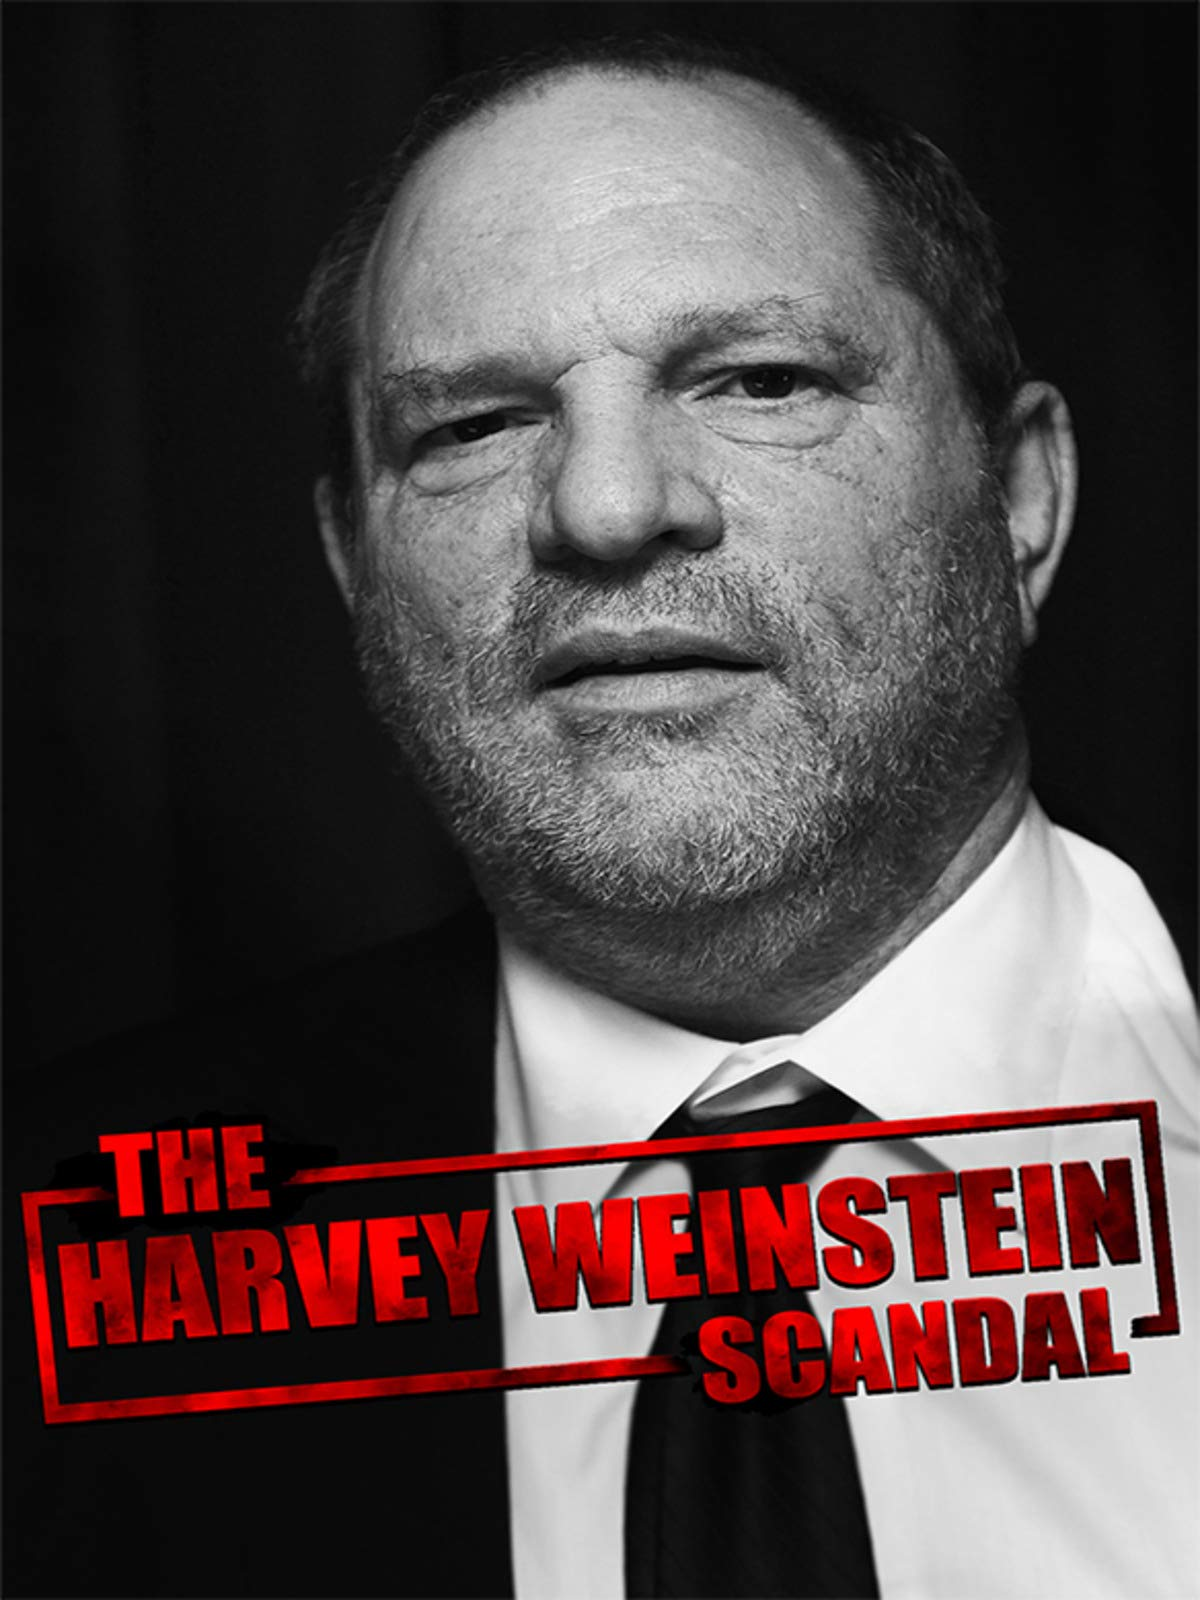 The Harvey Weinstein Scandal